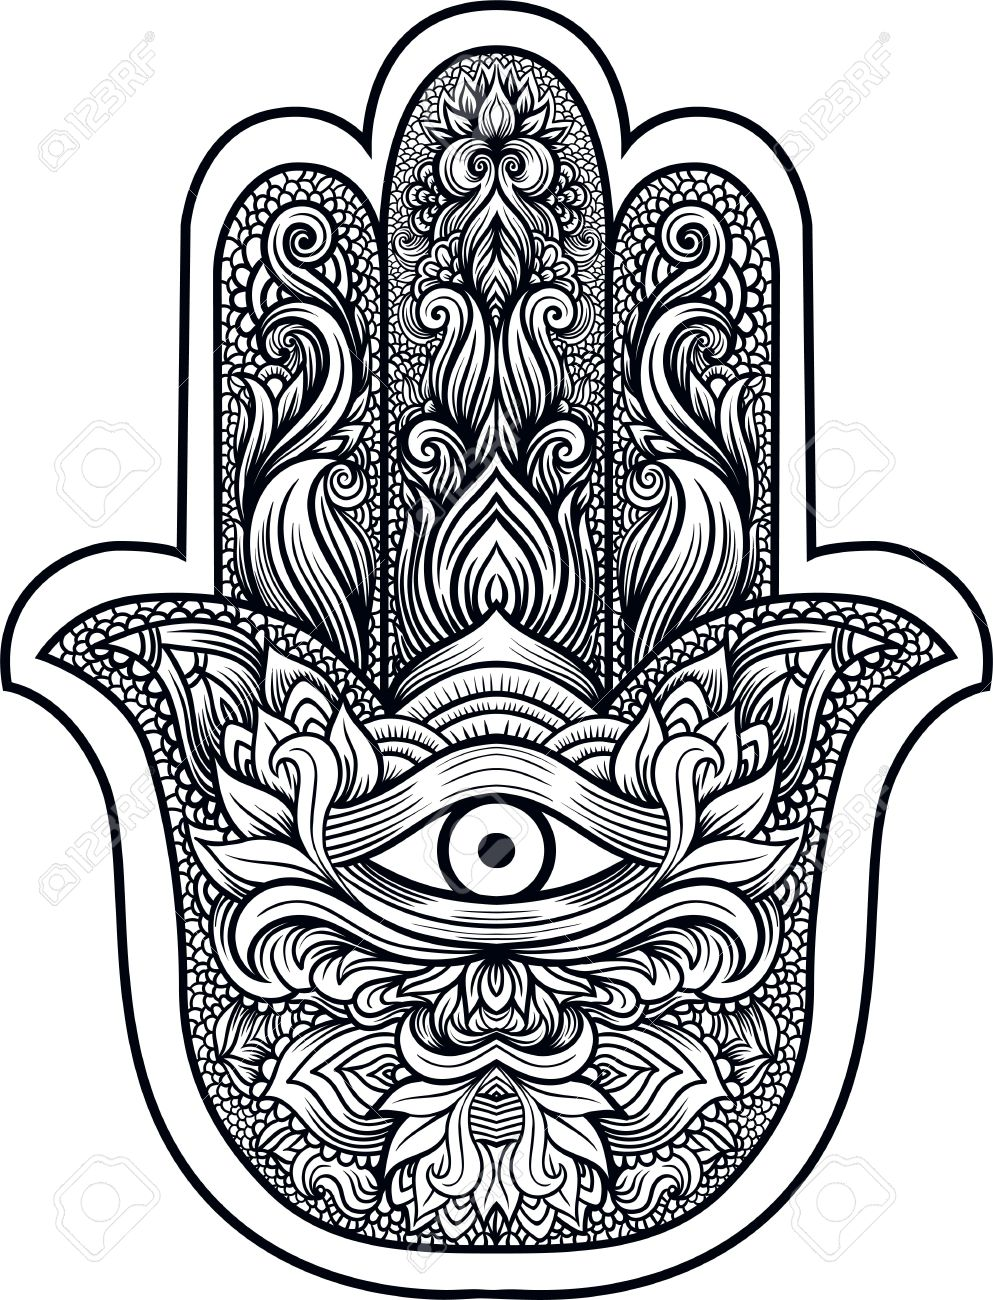 Indian Hand Hamsa Or Hand Of Fatima With Third Eye,good Luck.